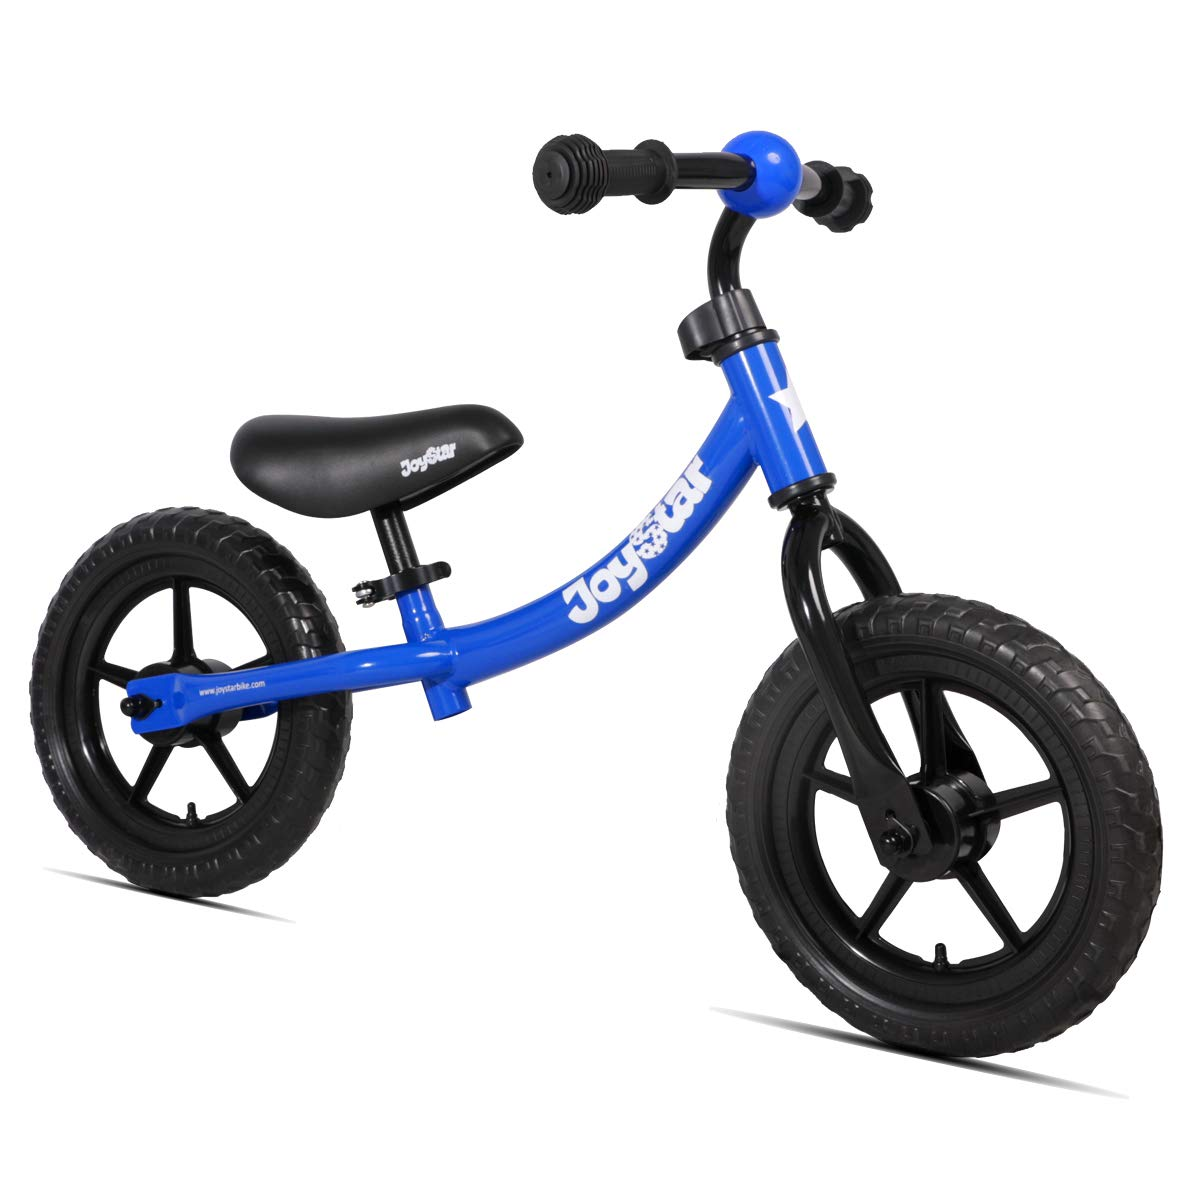 Top 11 Best Balance Bikes for Toddlers Reviews in 2020 10